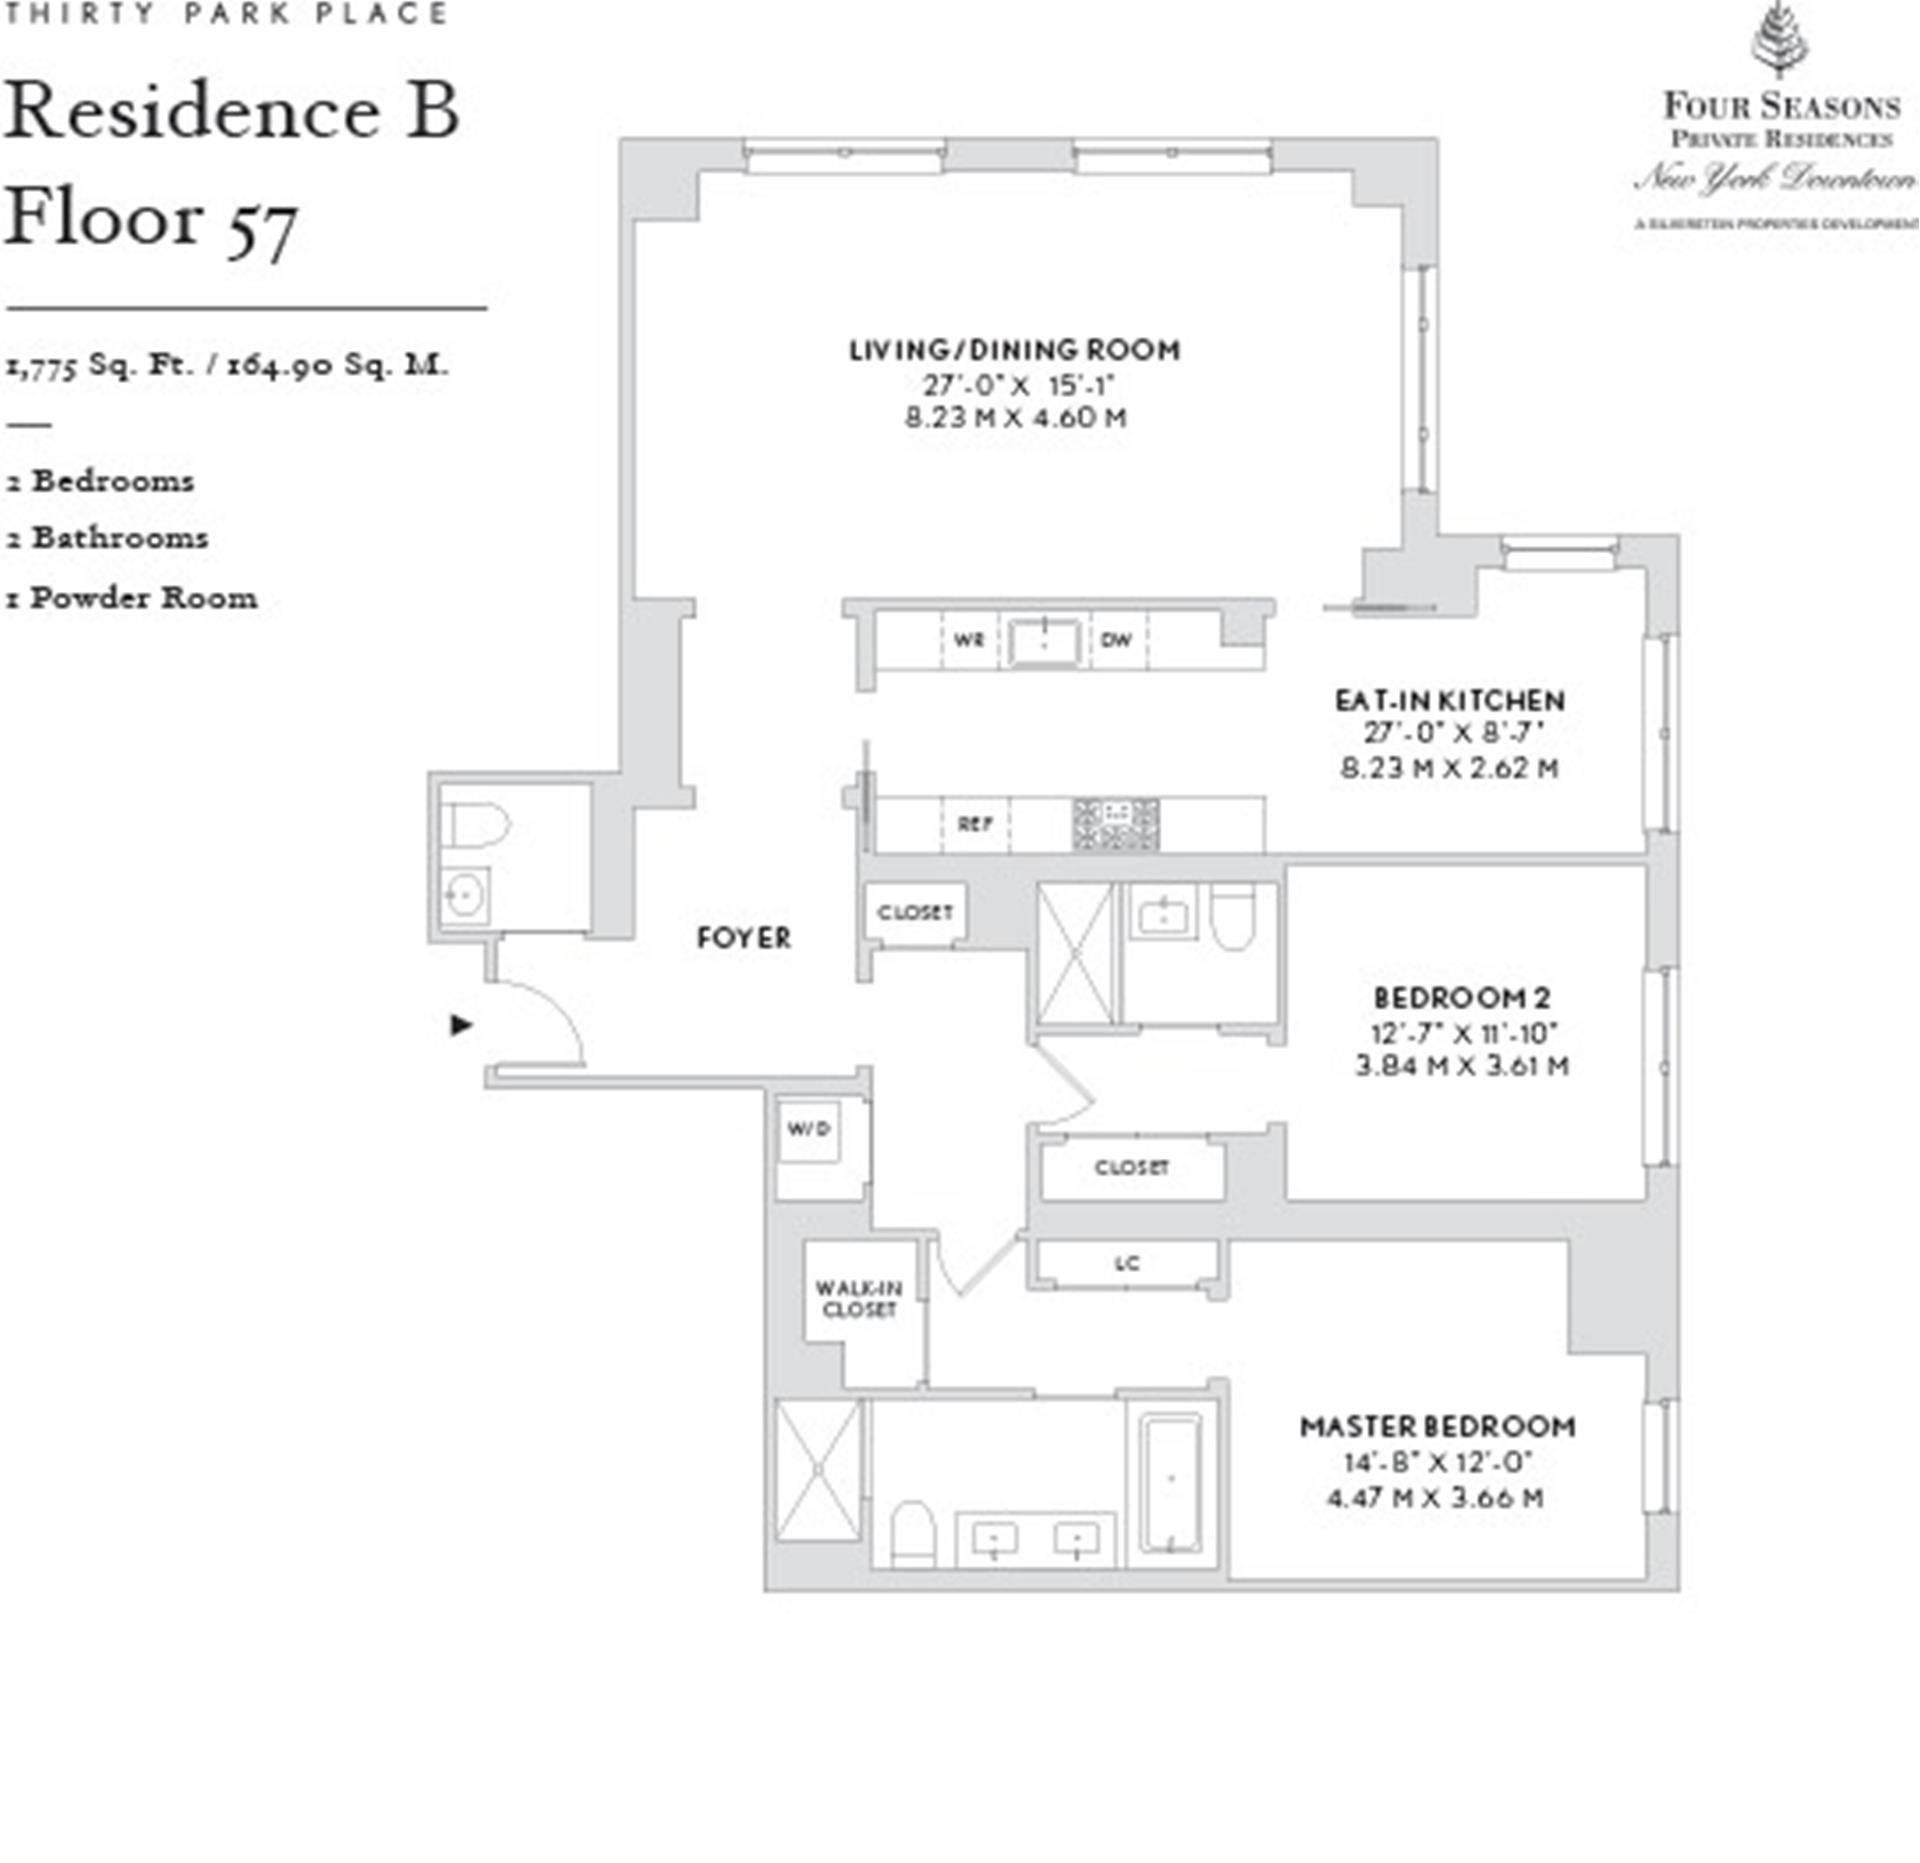 Floor plan of Four Seasons, 30 Park Pl, 57B - TriBeCa, New York